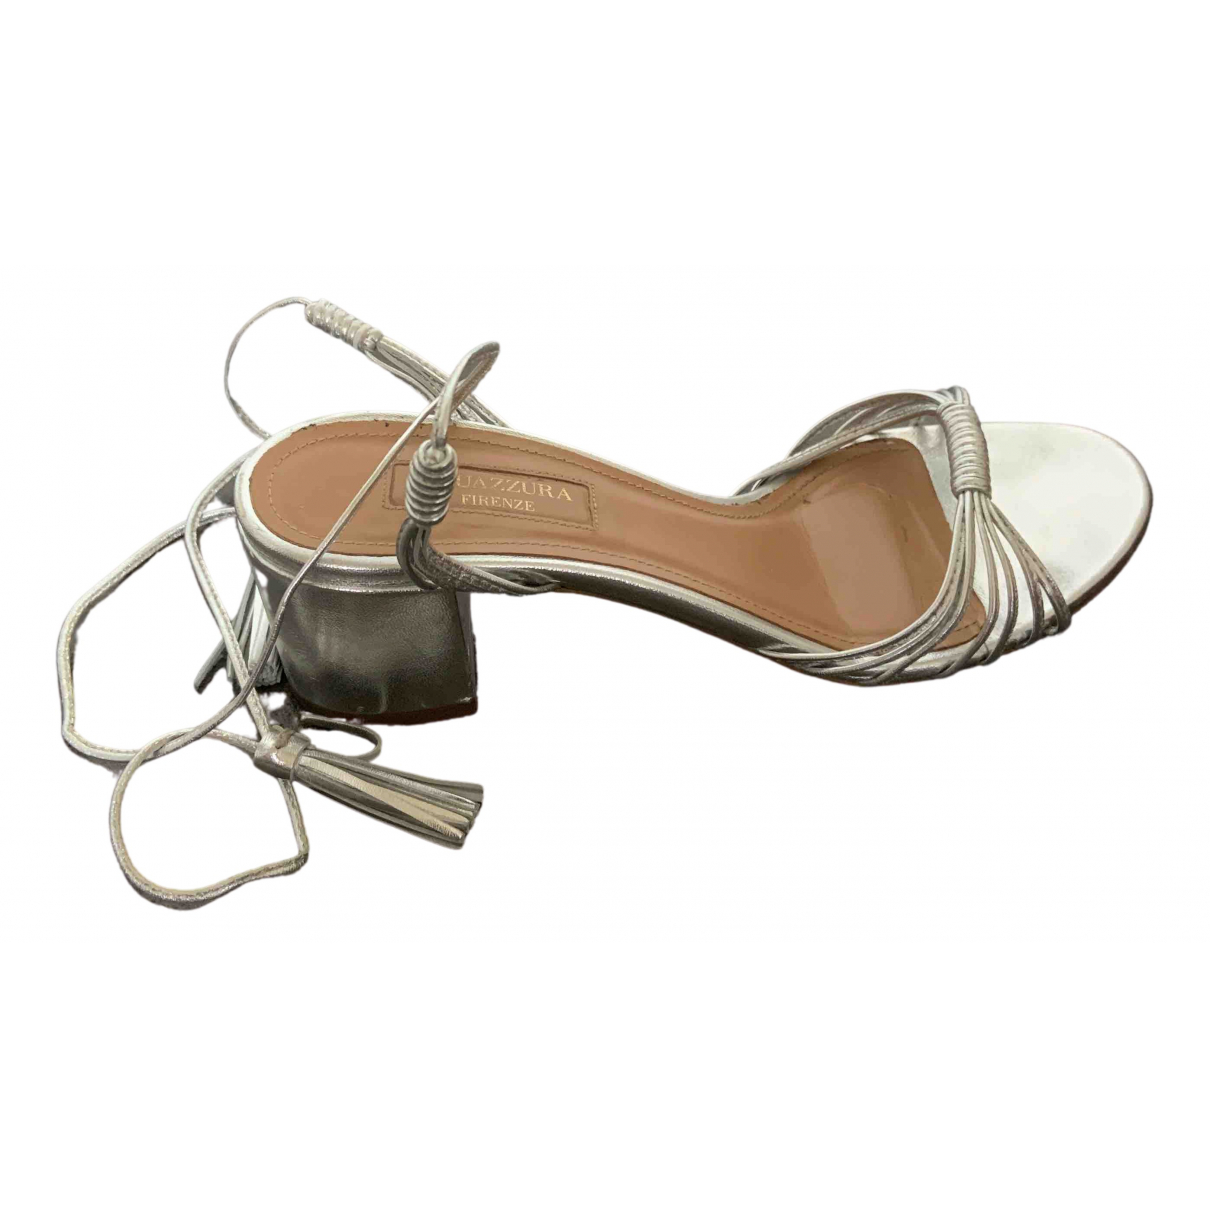 Aquazzura Beverly Hills Silver Leather Sandals for Women 37.5 EU